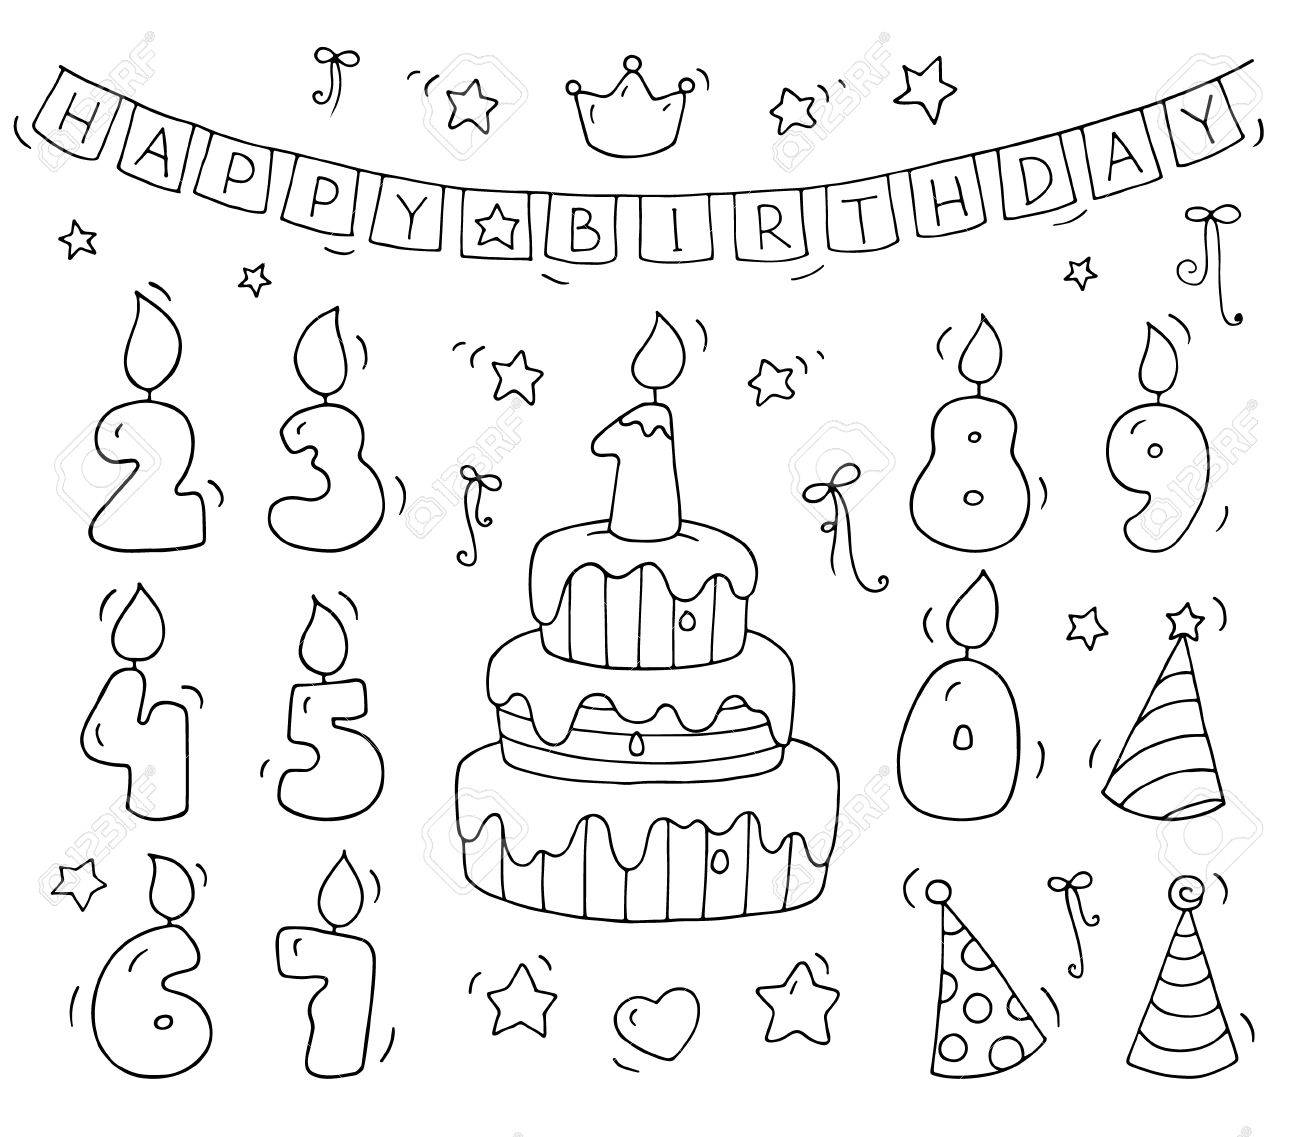 Cute Number Shaped Candles Set Cartoon Birthday Cake And Lighting In The Form Of Numbers Doodle Collection For Party Kids Desigh